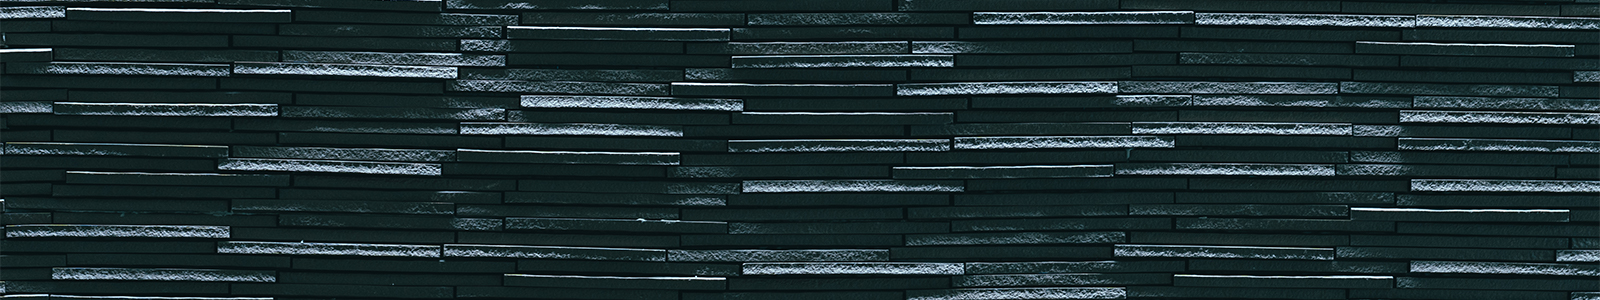 Texture of gray tile on a wall in Nancy Nicholas Hall